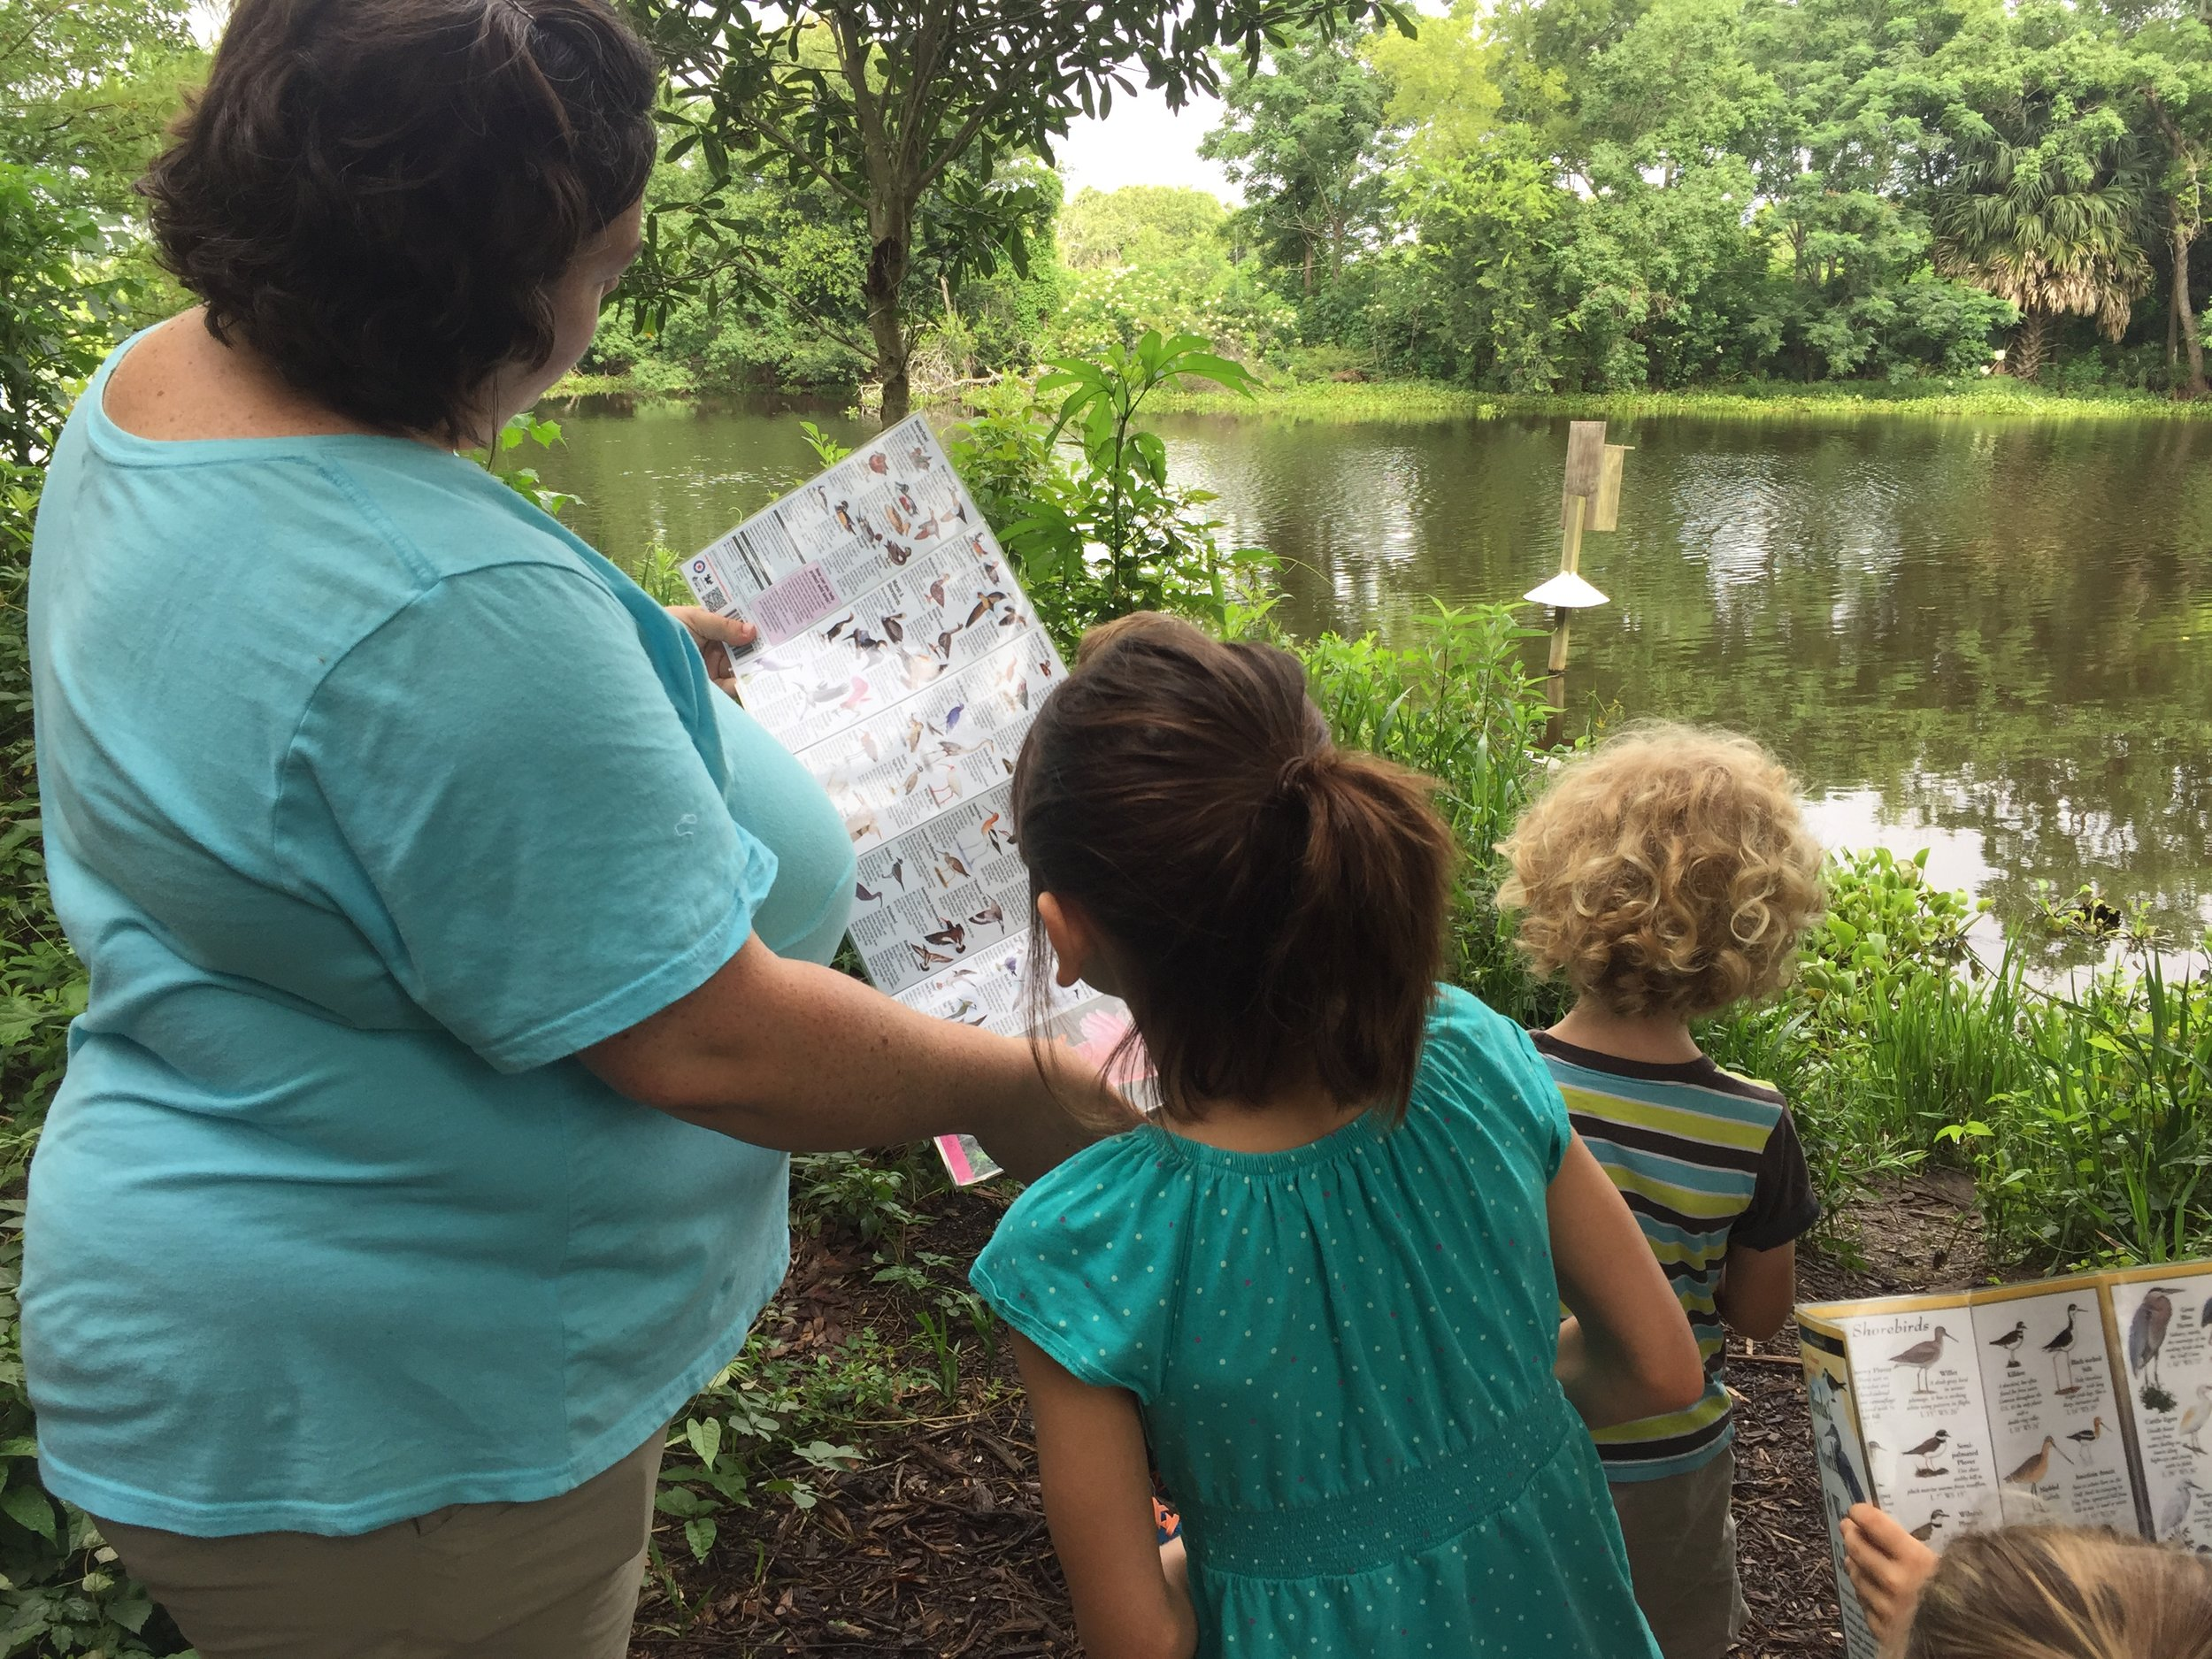 Using naturalist guides to identify the bird preening on the other side of the water.